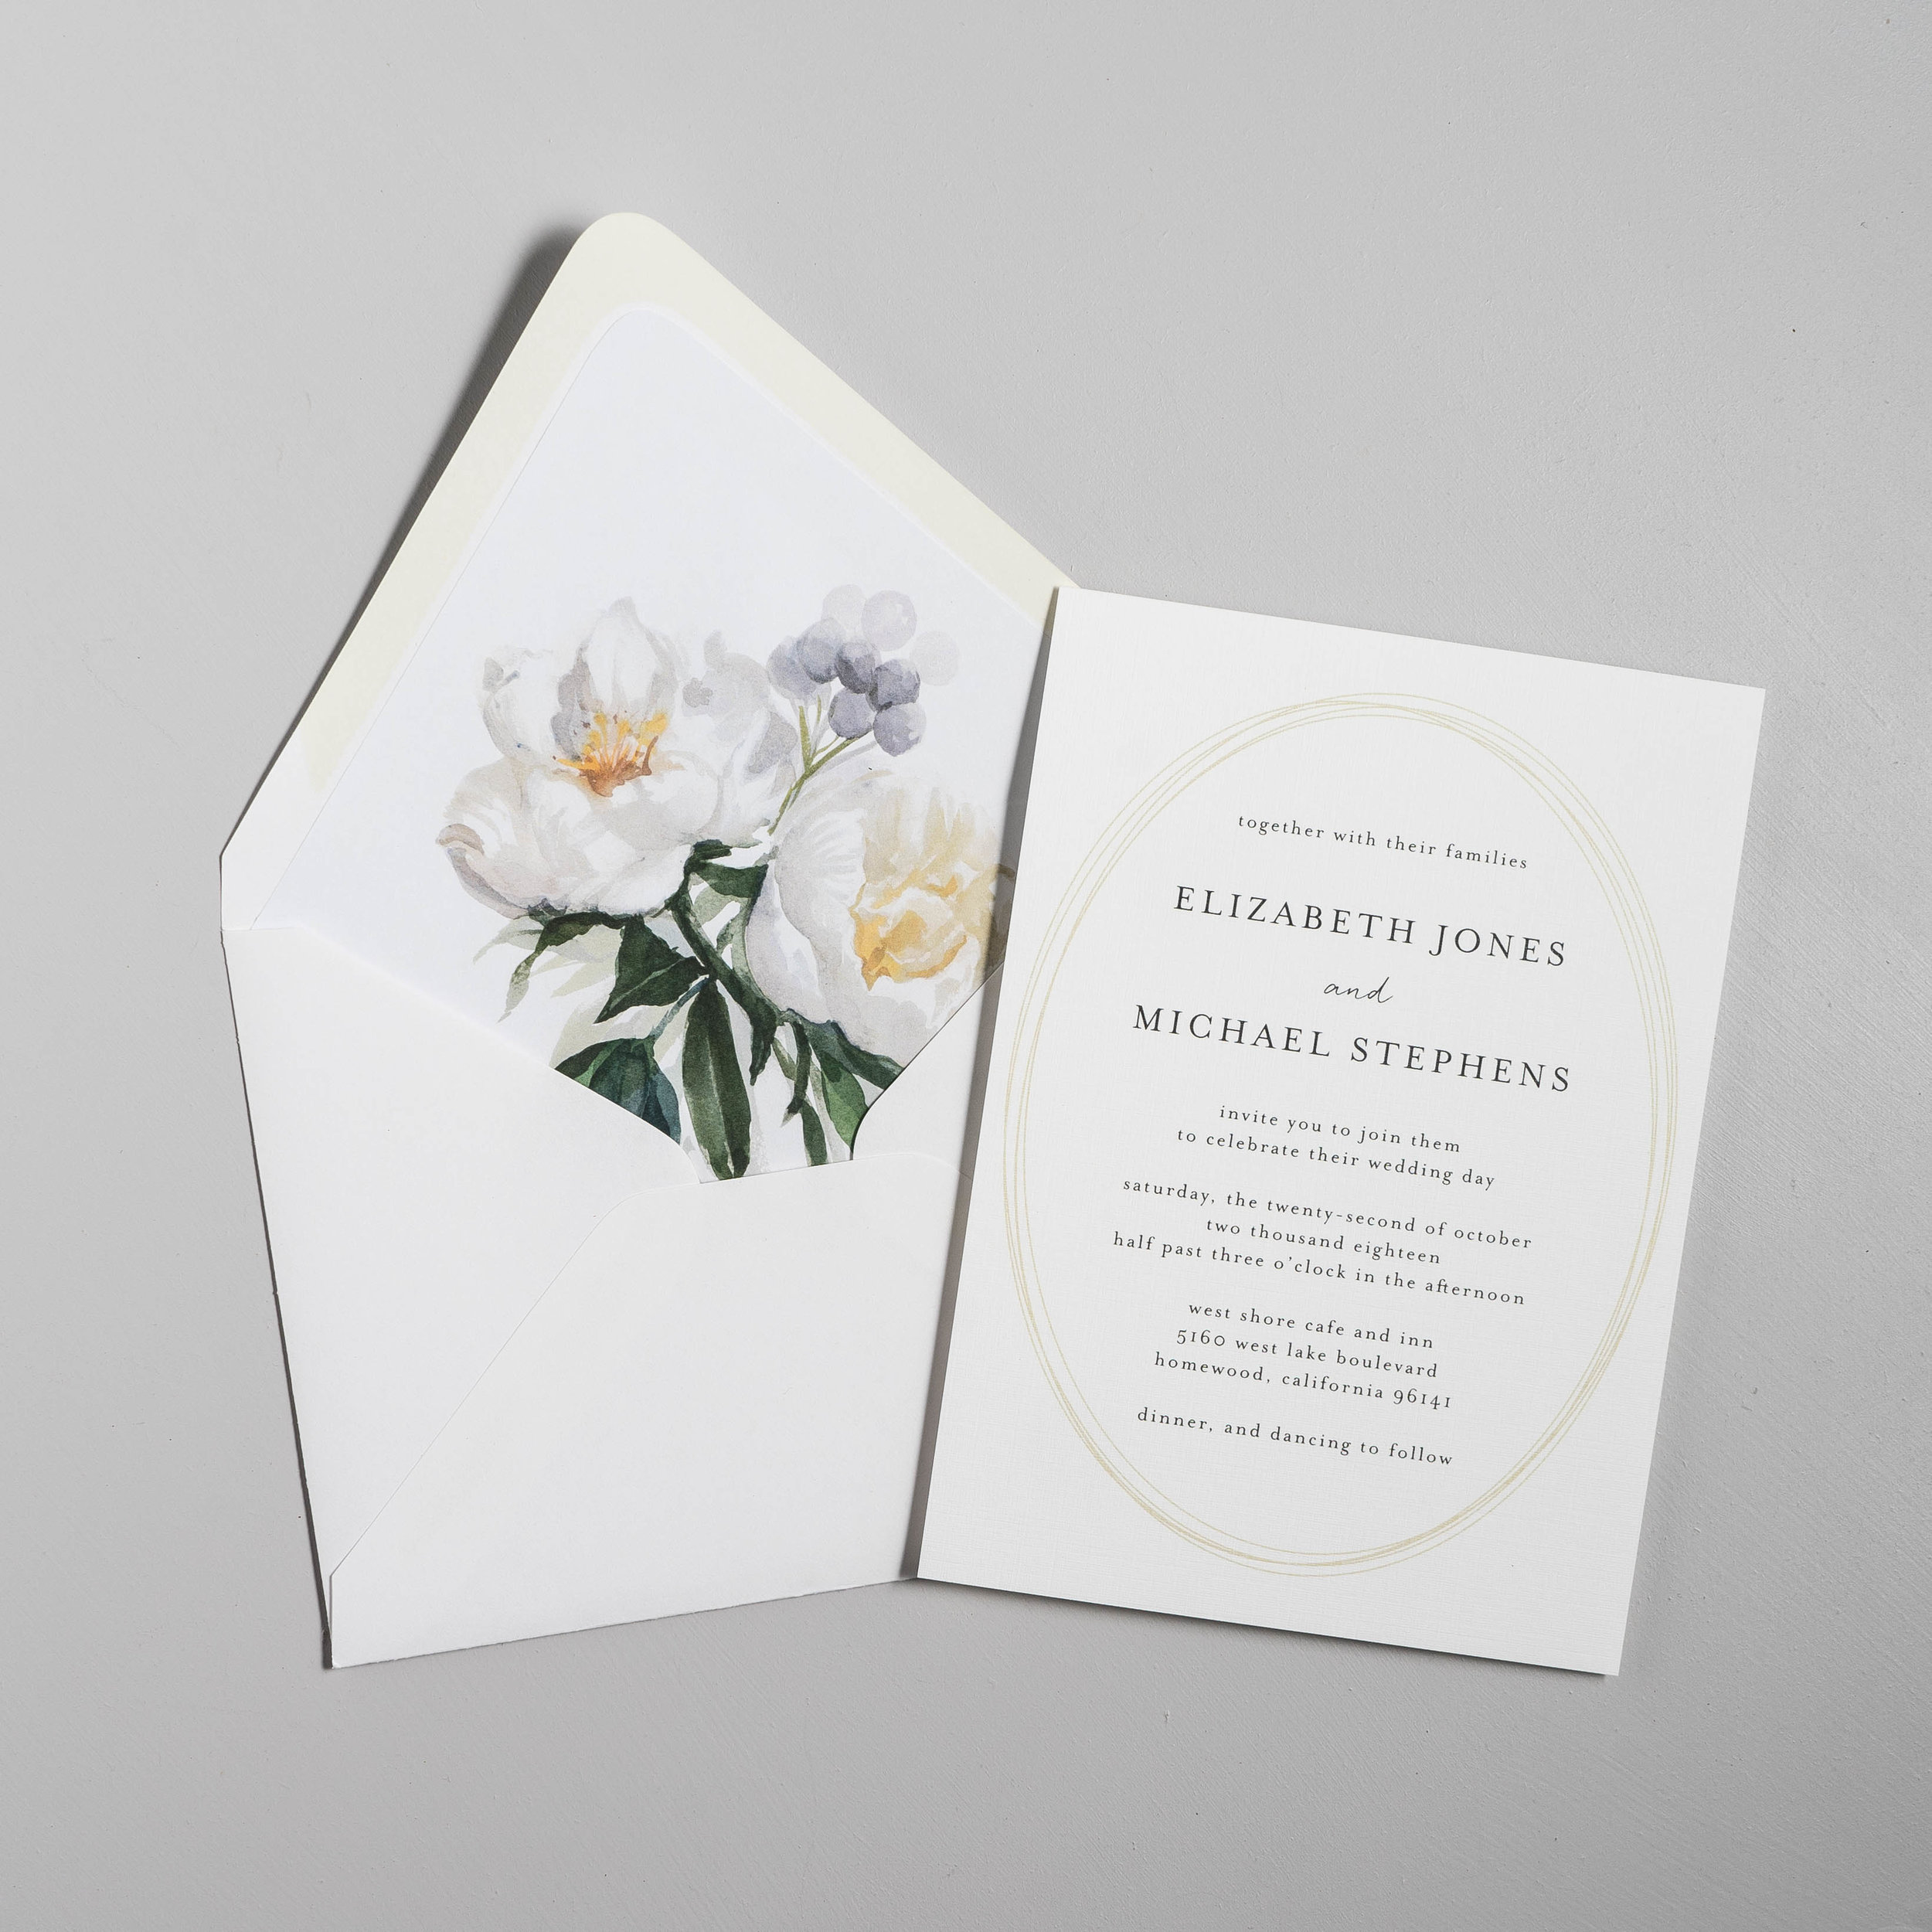 Modern Oval and White Peony Wedding Invitation by Just Jurf-6.jpg